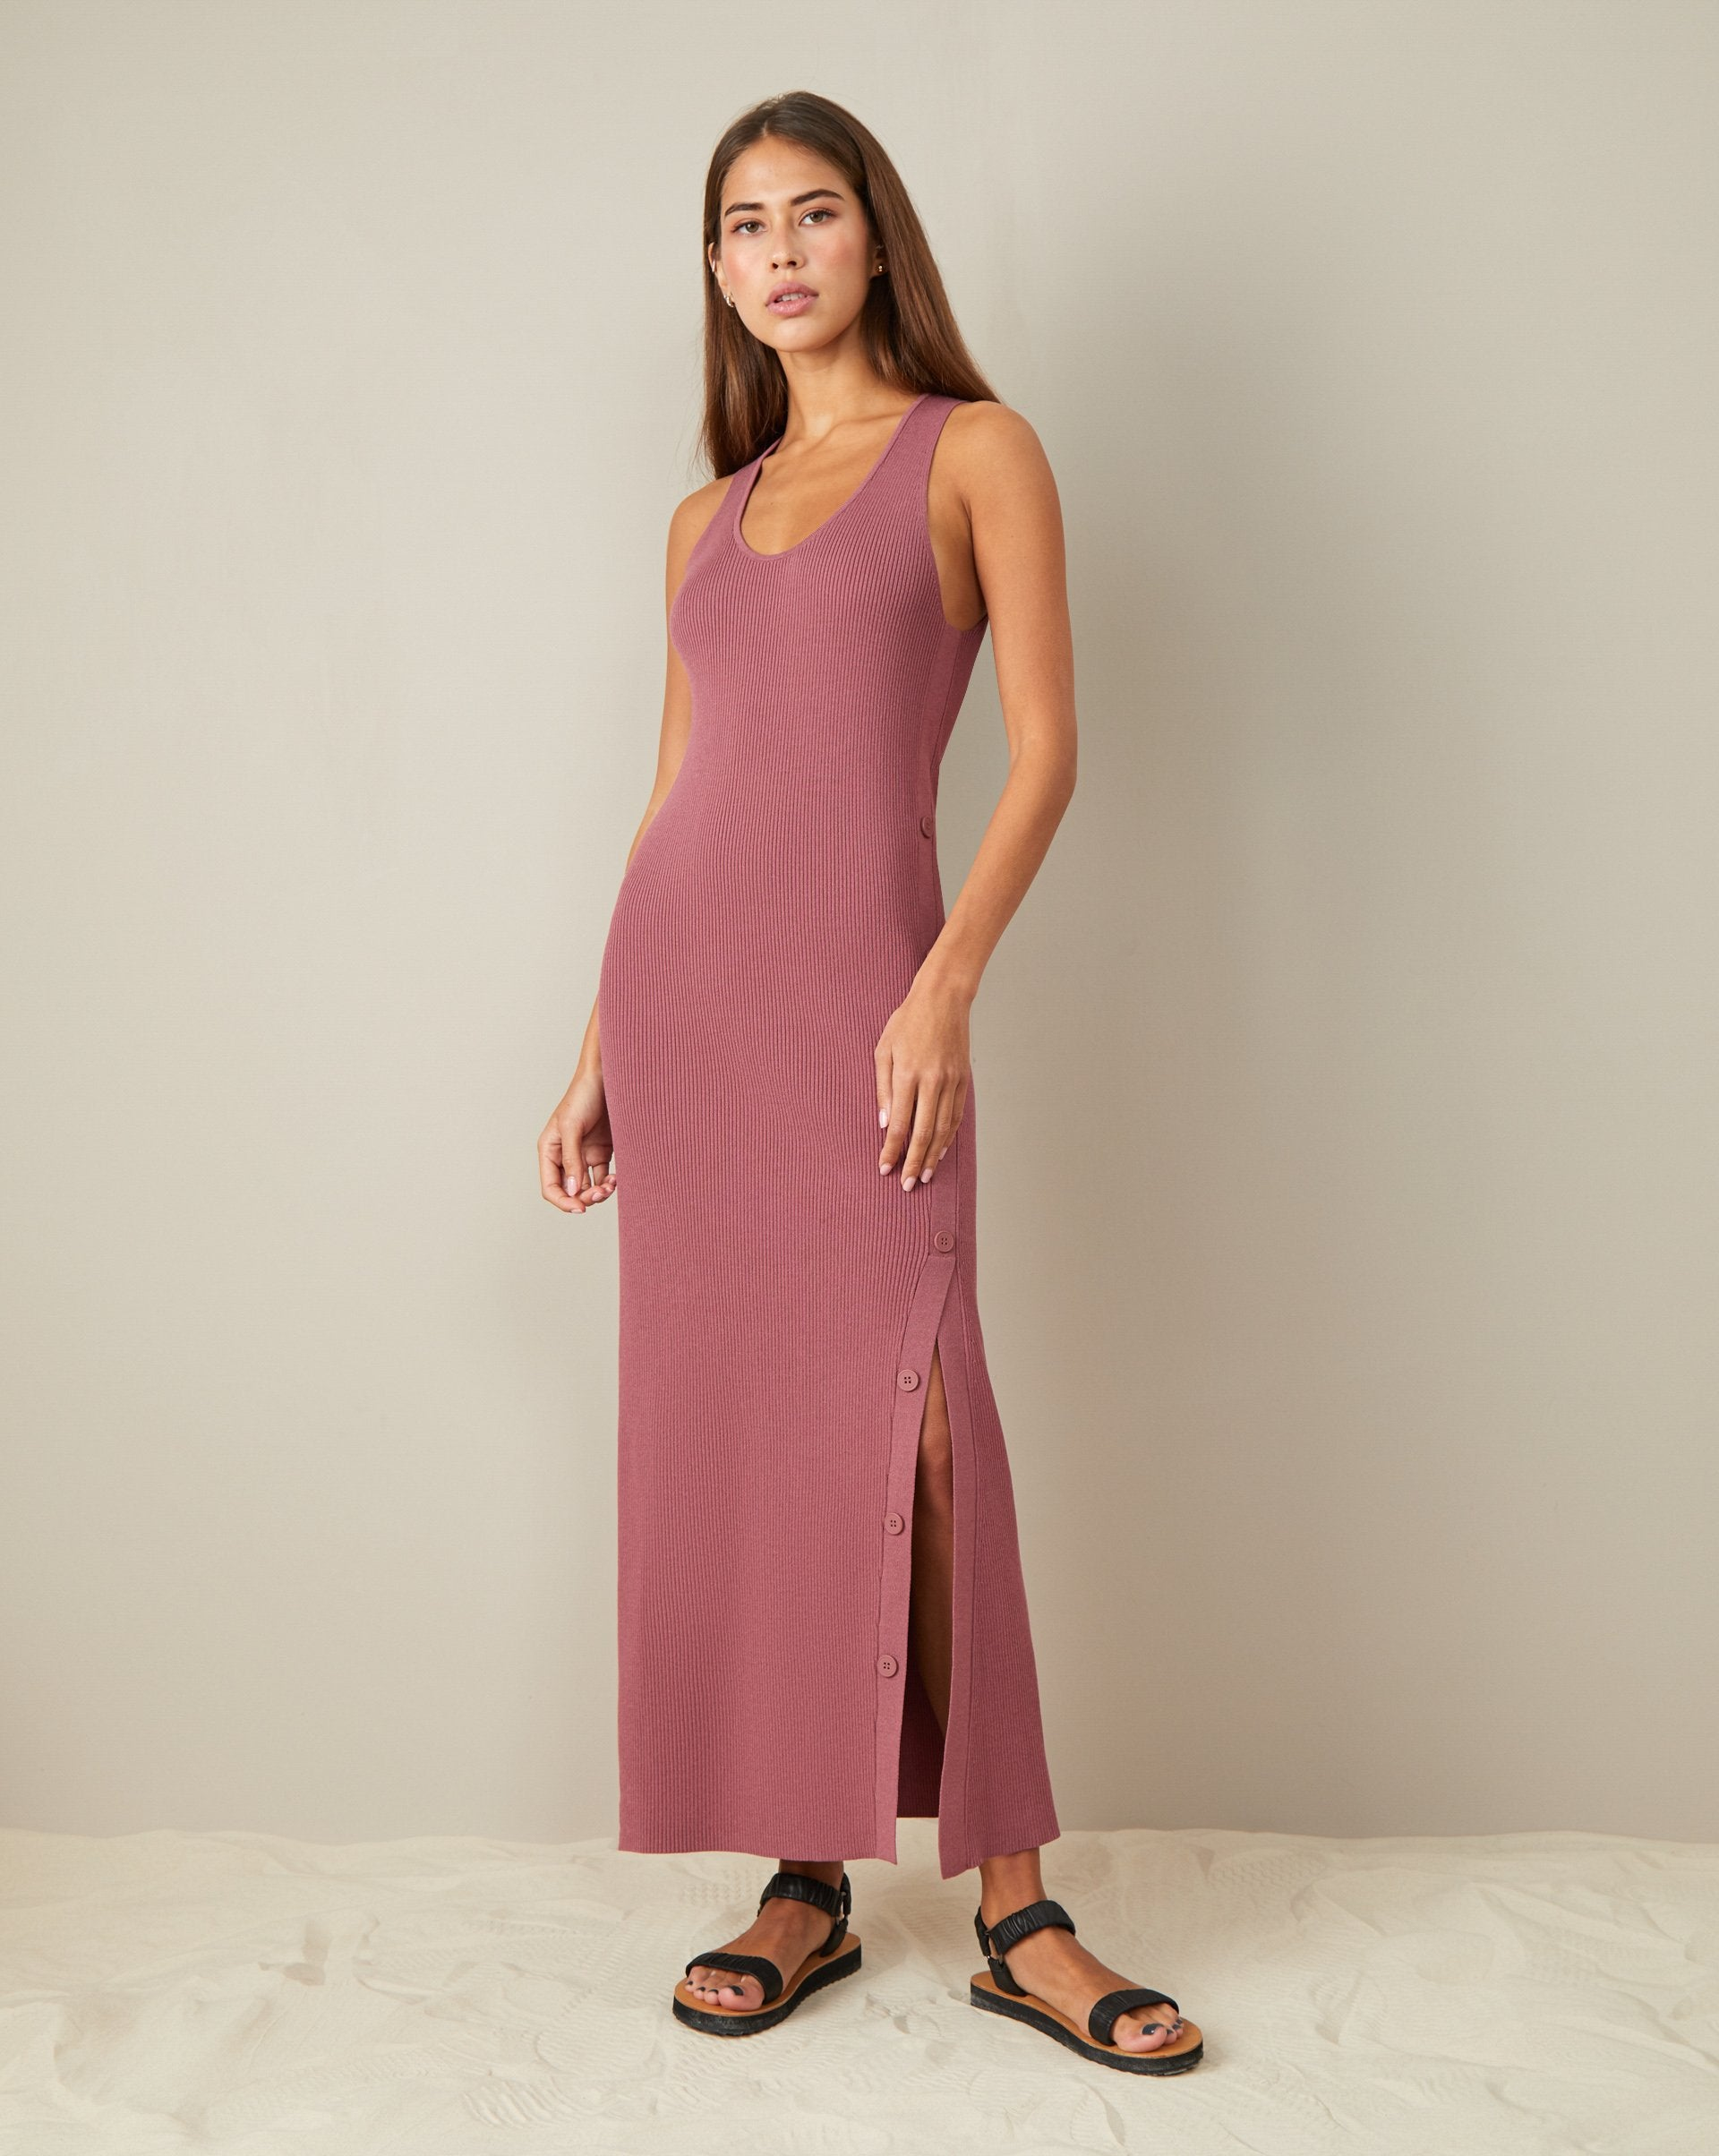 Knit side split dress - 12 STOREEZ